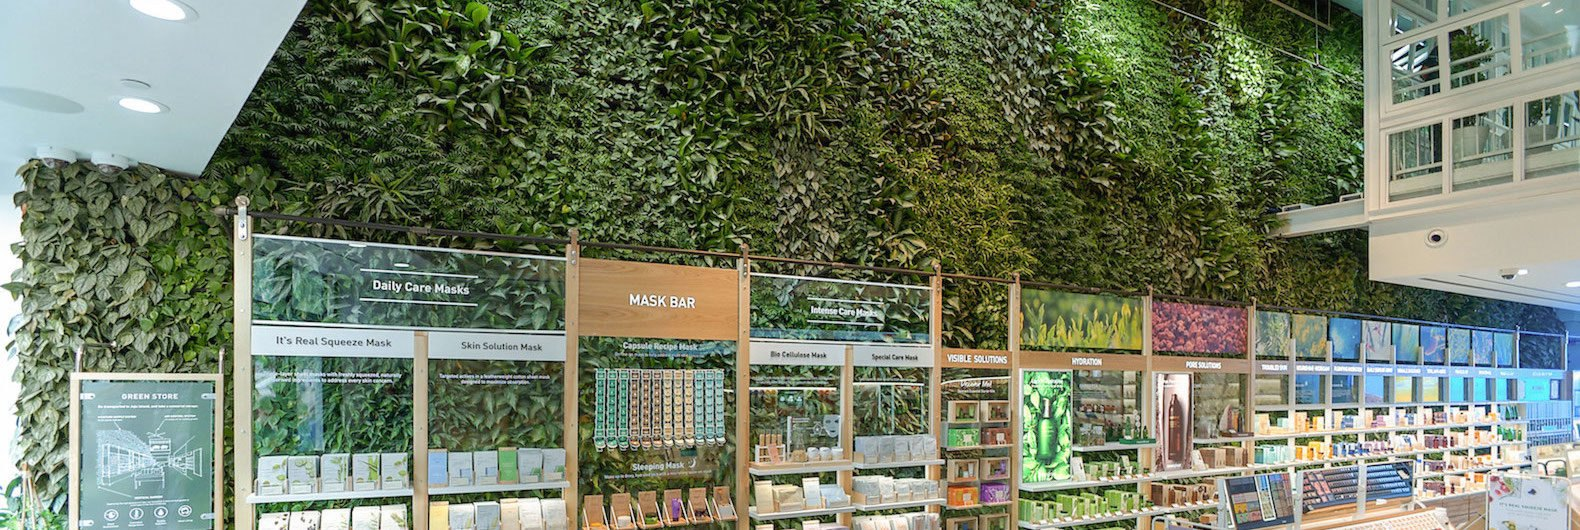 Nearly 10,000 Plants Grow On NYCu0027s Largest Public Indoor Green Wall